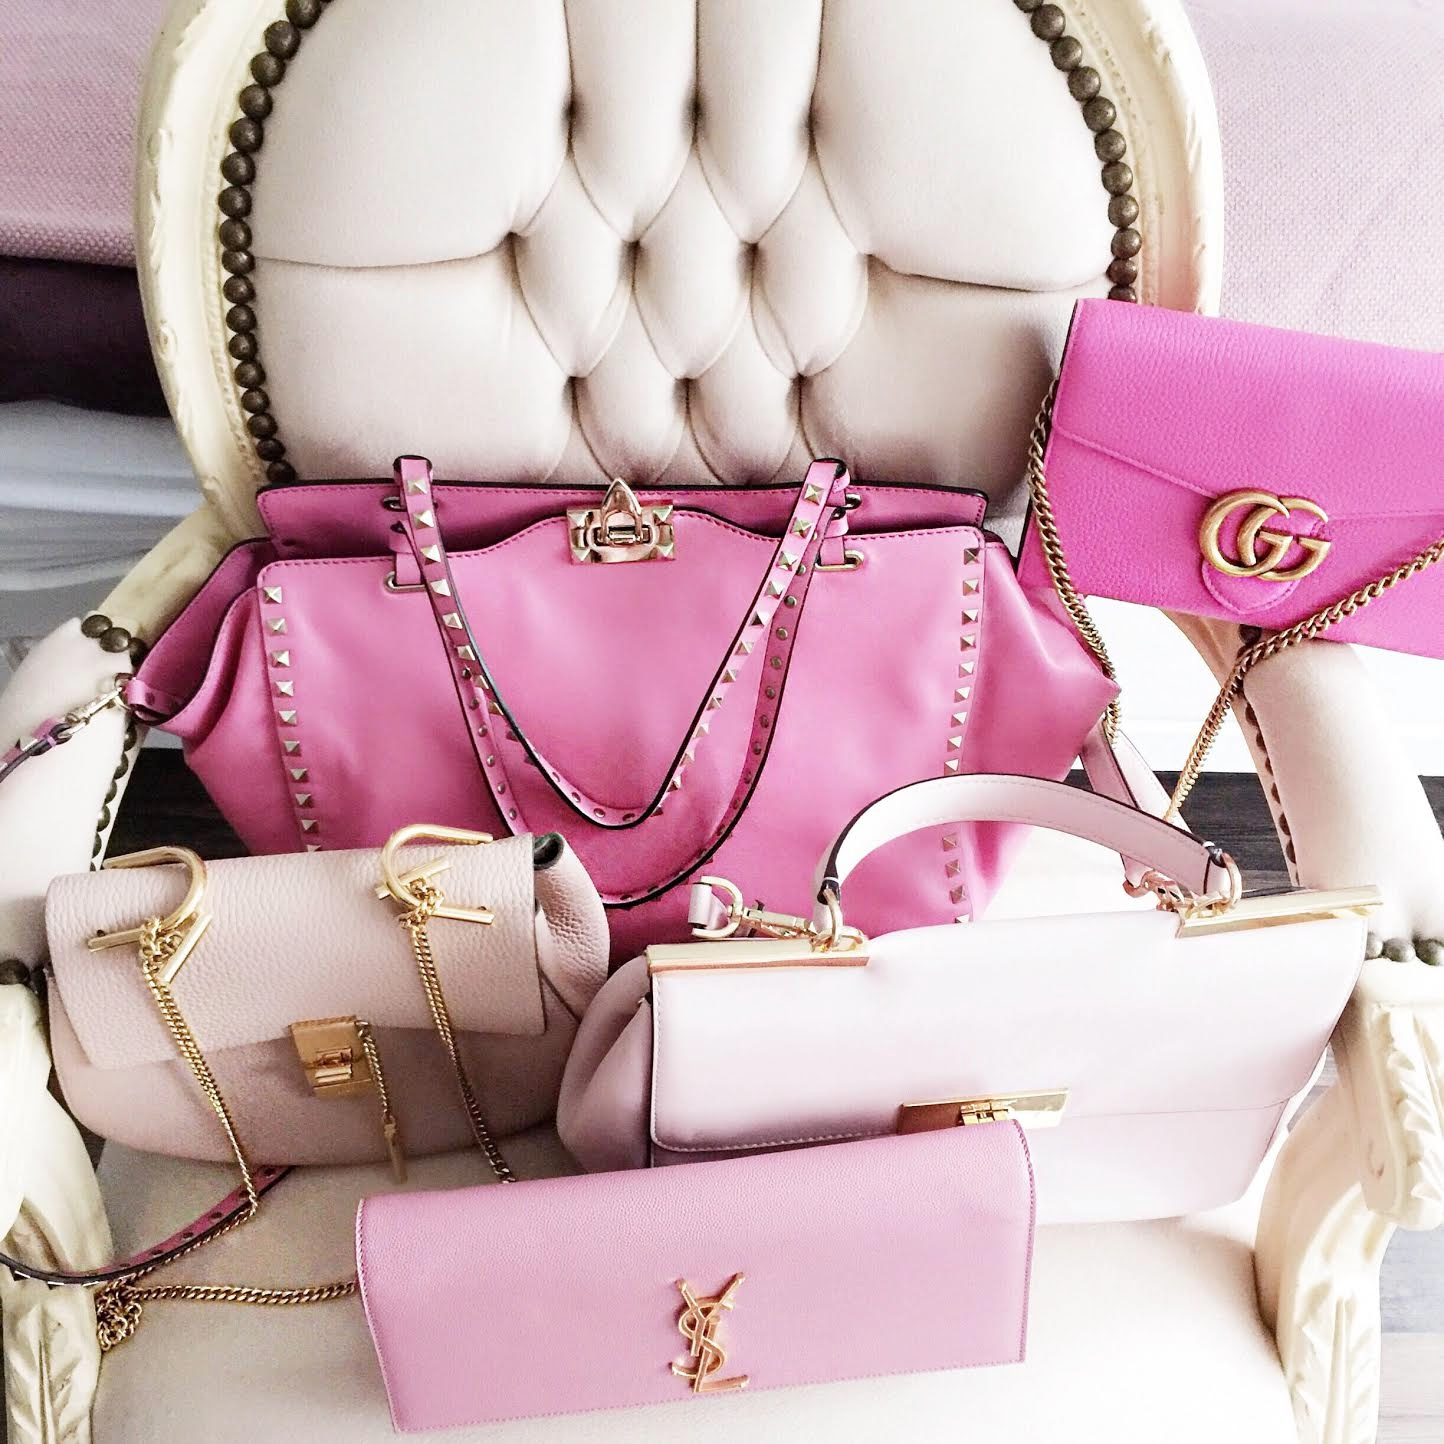 designer-bags-pink-worth-the-price